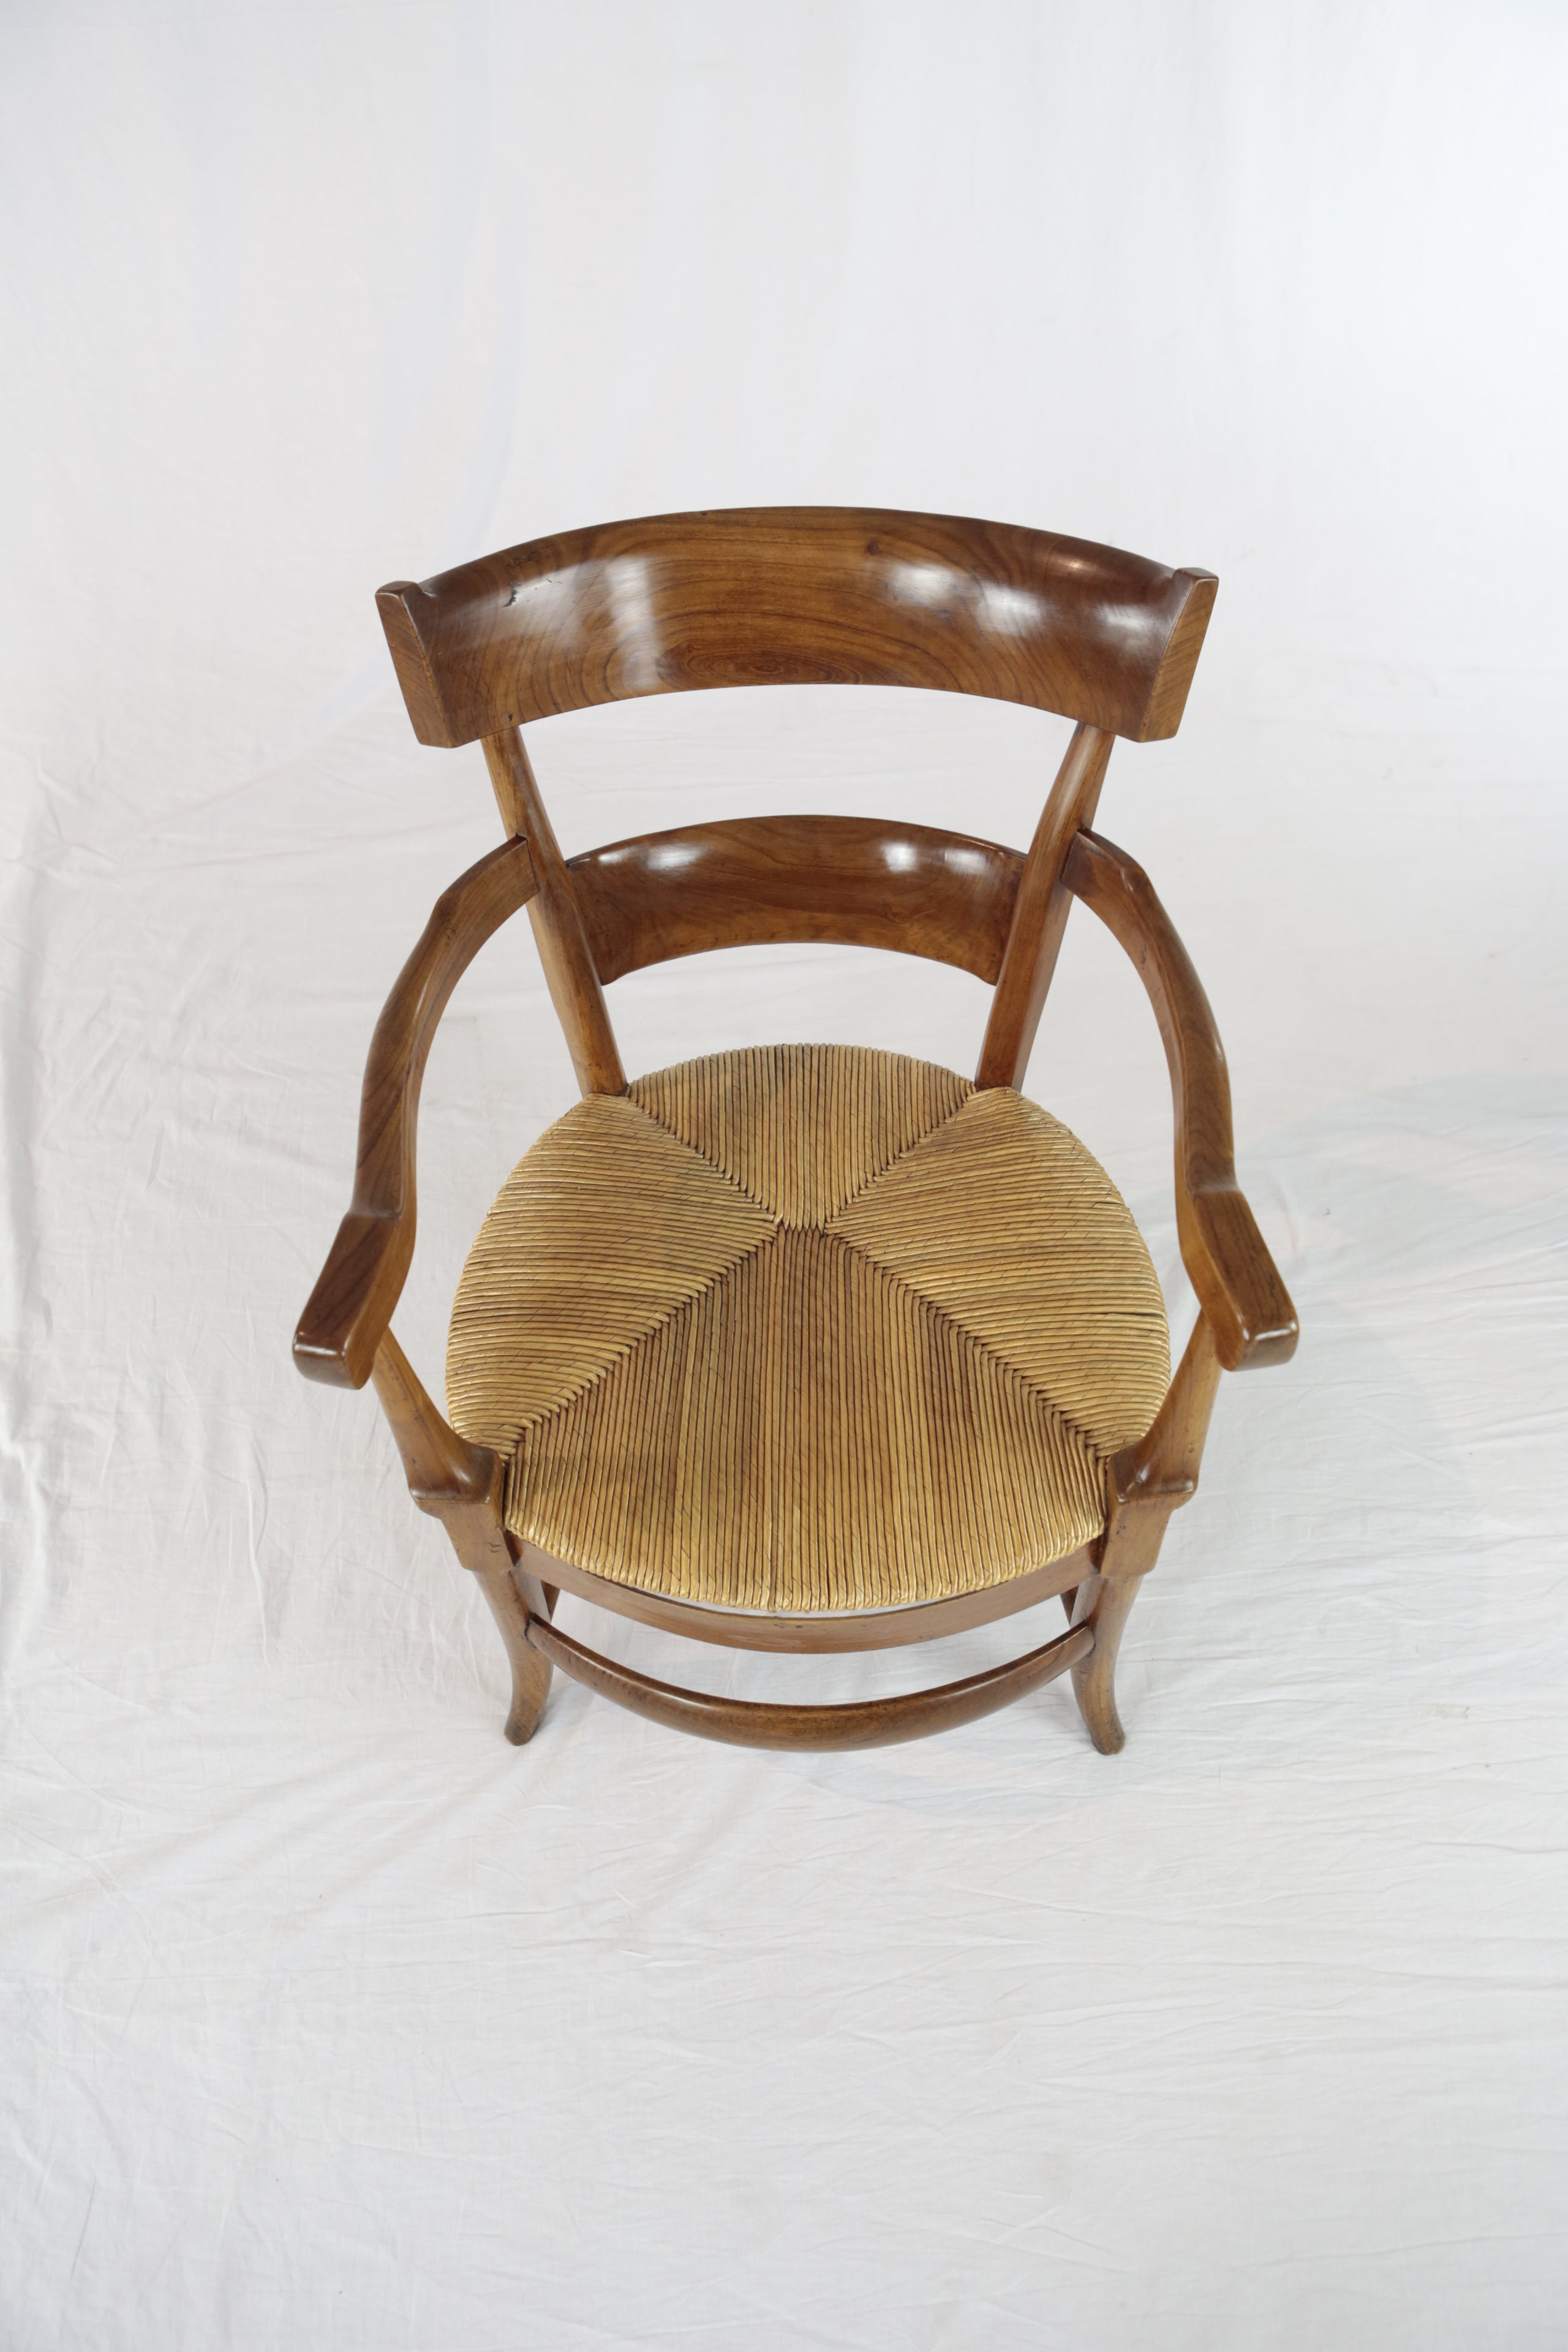 Comfortable armchair cherrywood 19th century for sale at 1stdibs